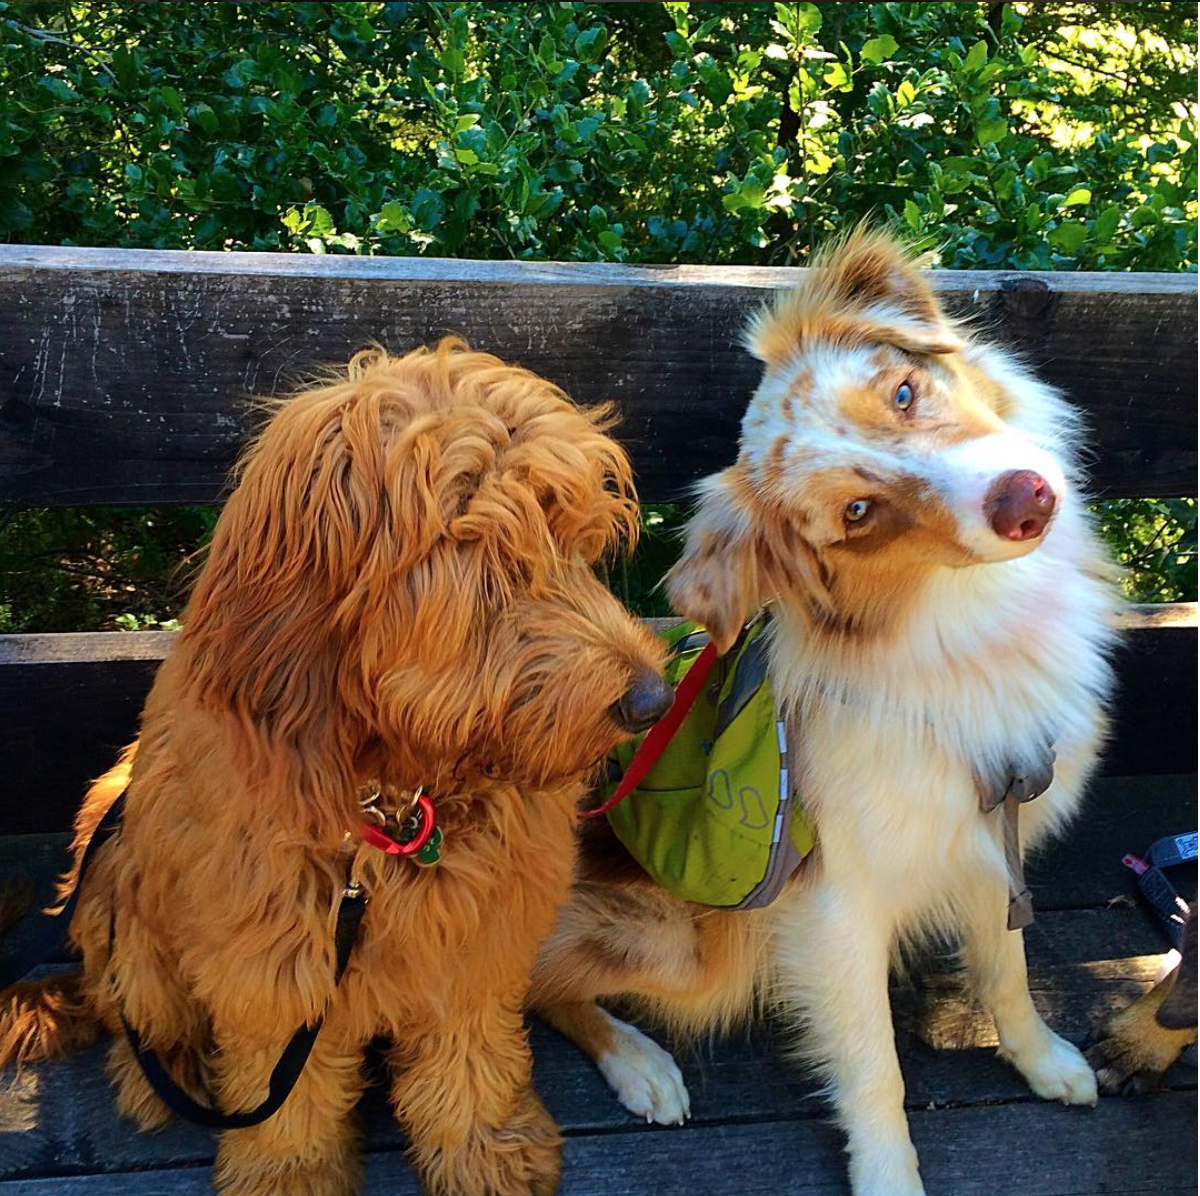 Backpacks are a great way to add a little extra challenge on walks!